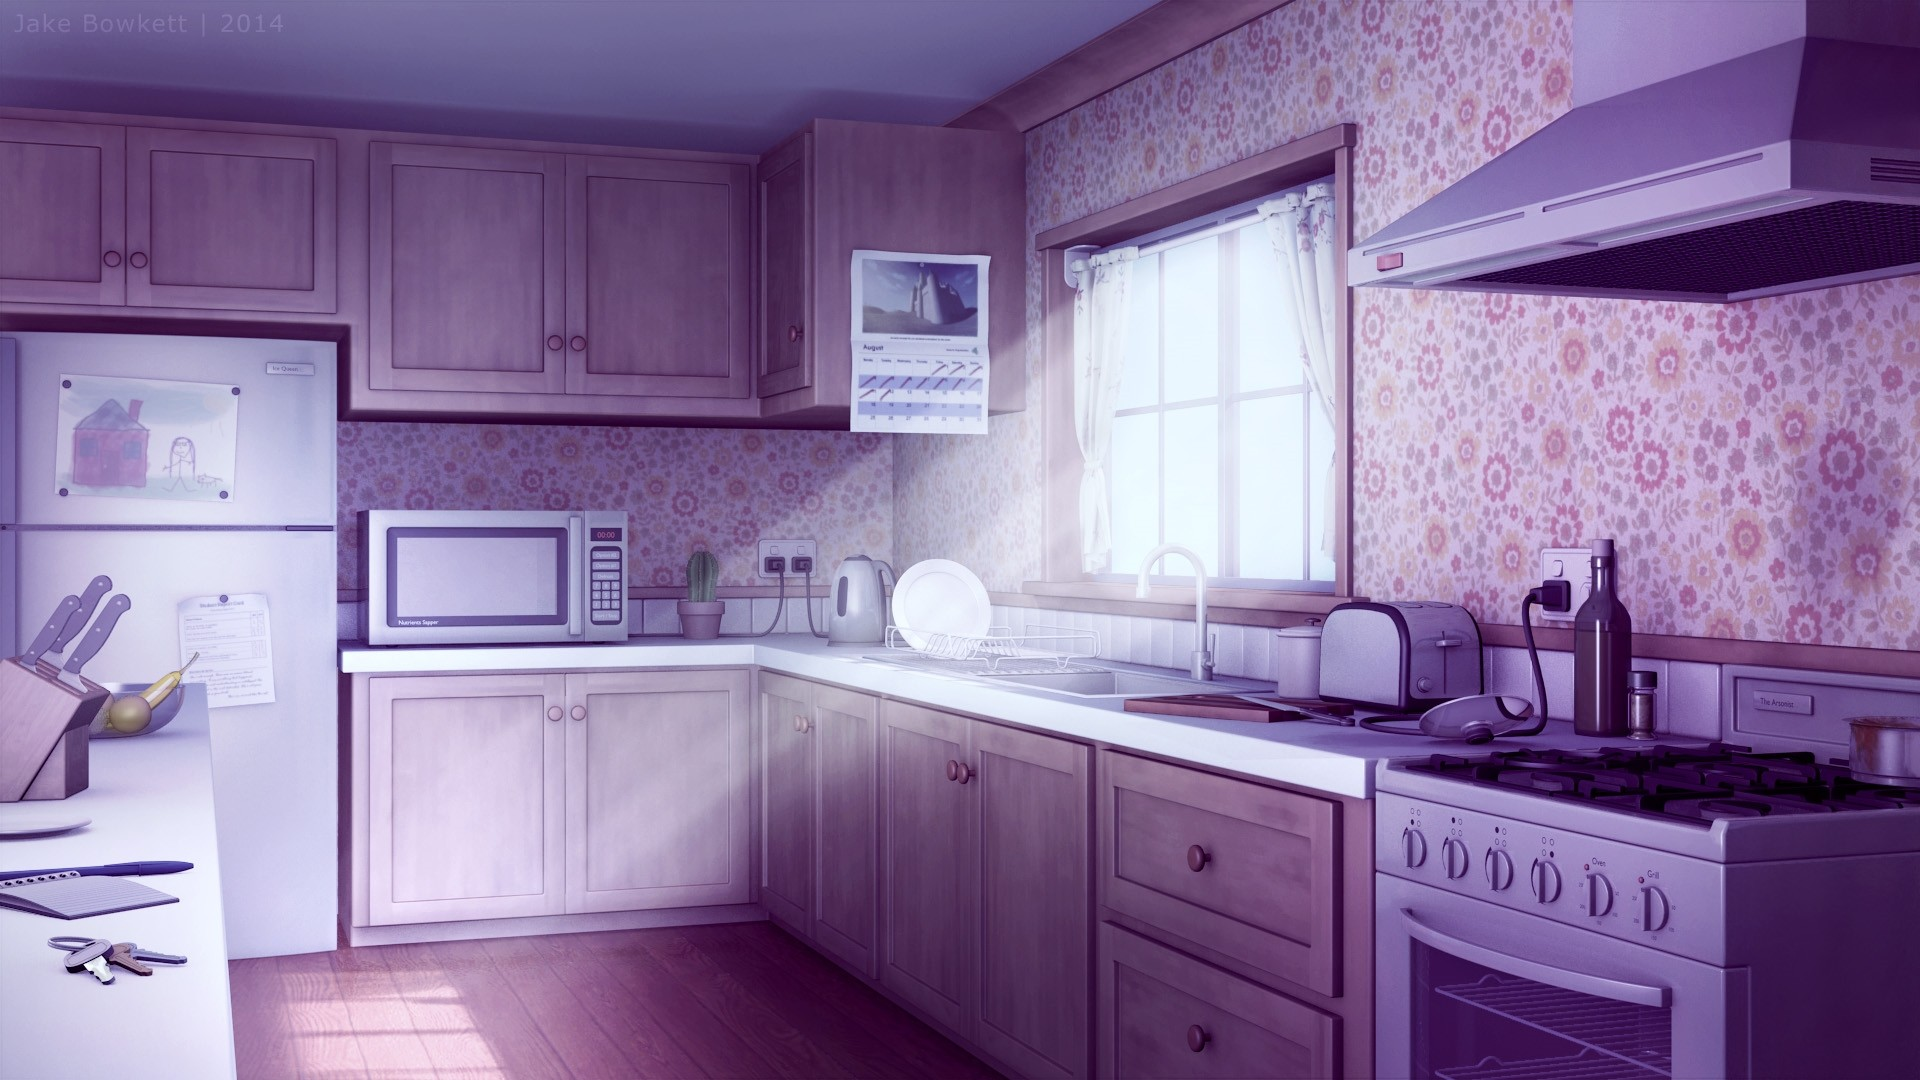 Anime Kitchen Background